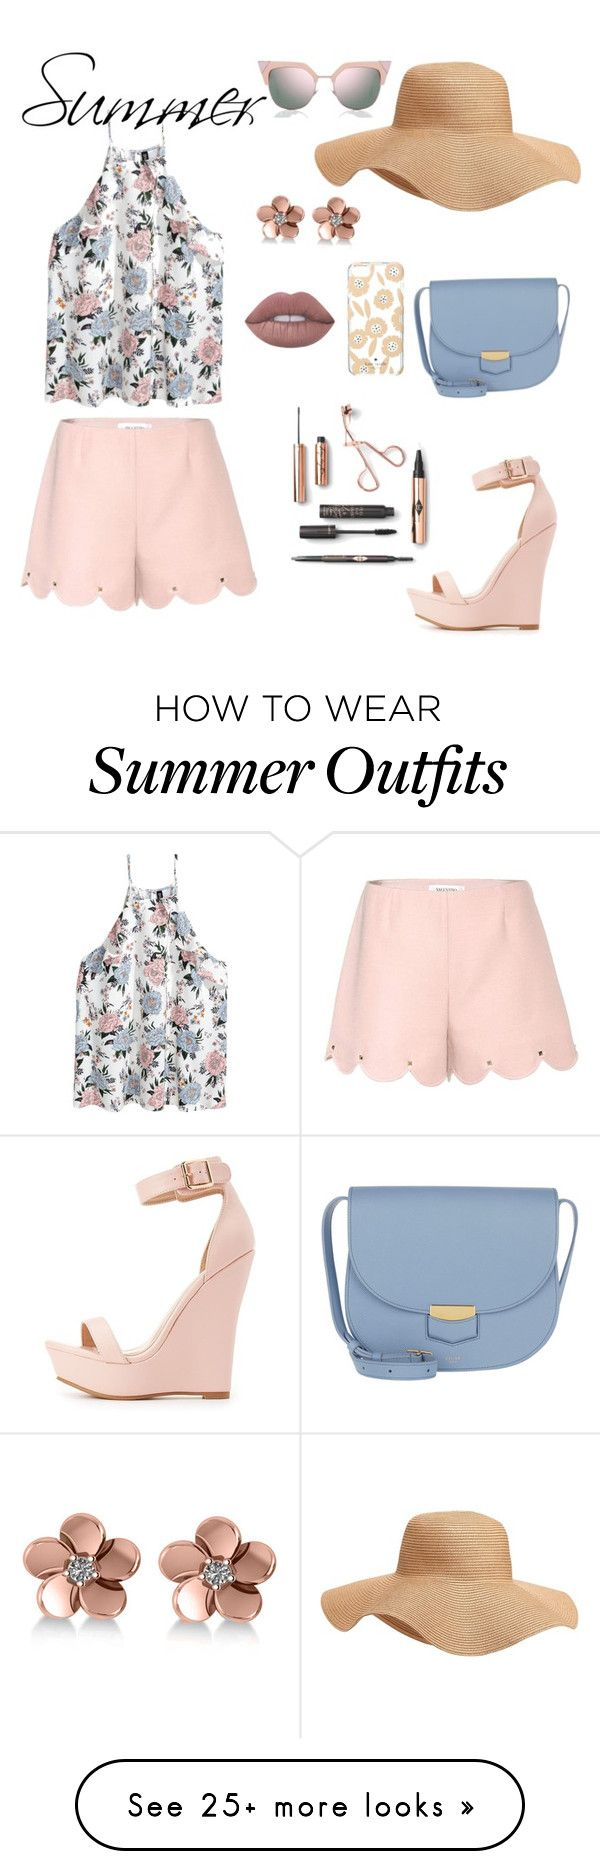 """""""Summer outfit"""" by gretusska on Polyvore featuring Valentino, Charlotte Russe, CÉLINE, Fendi, Kate Spade, Old Navy and Allurez"""